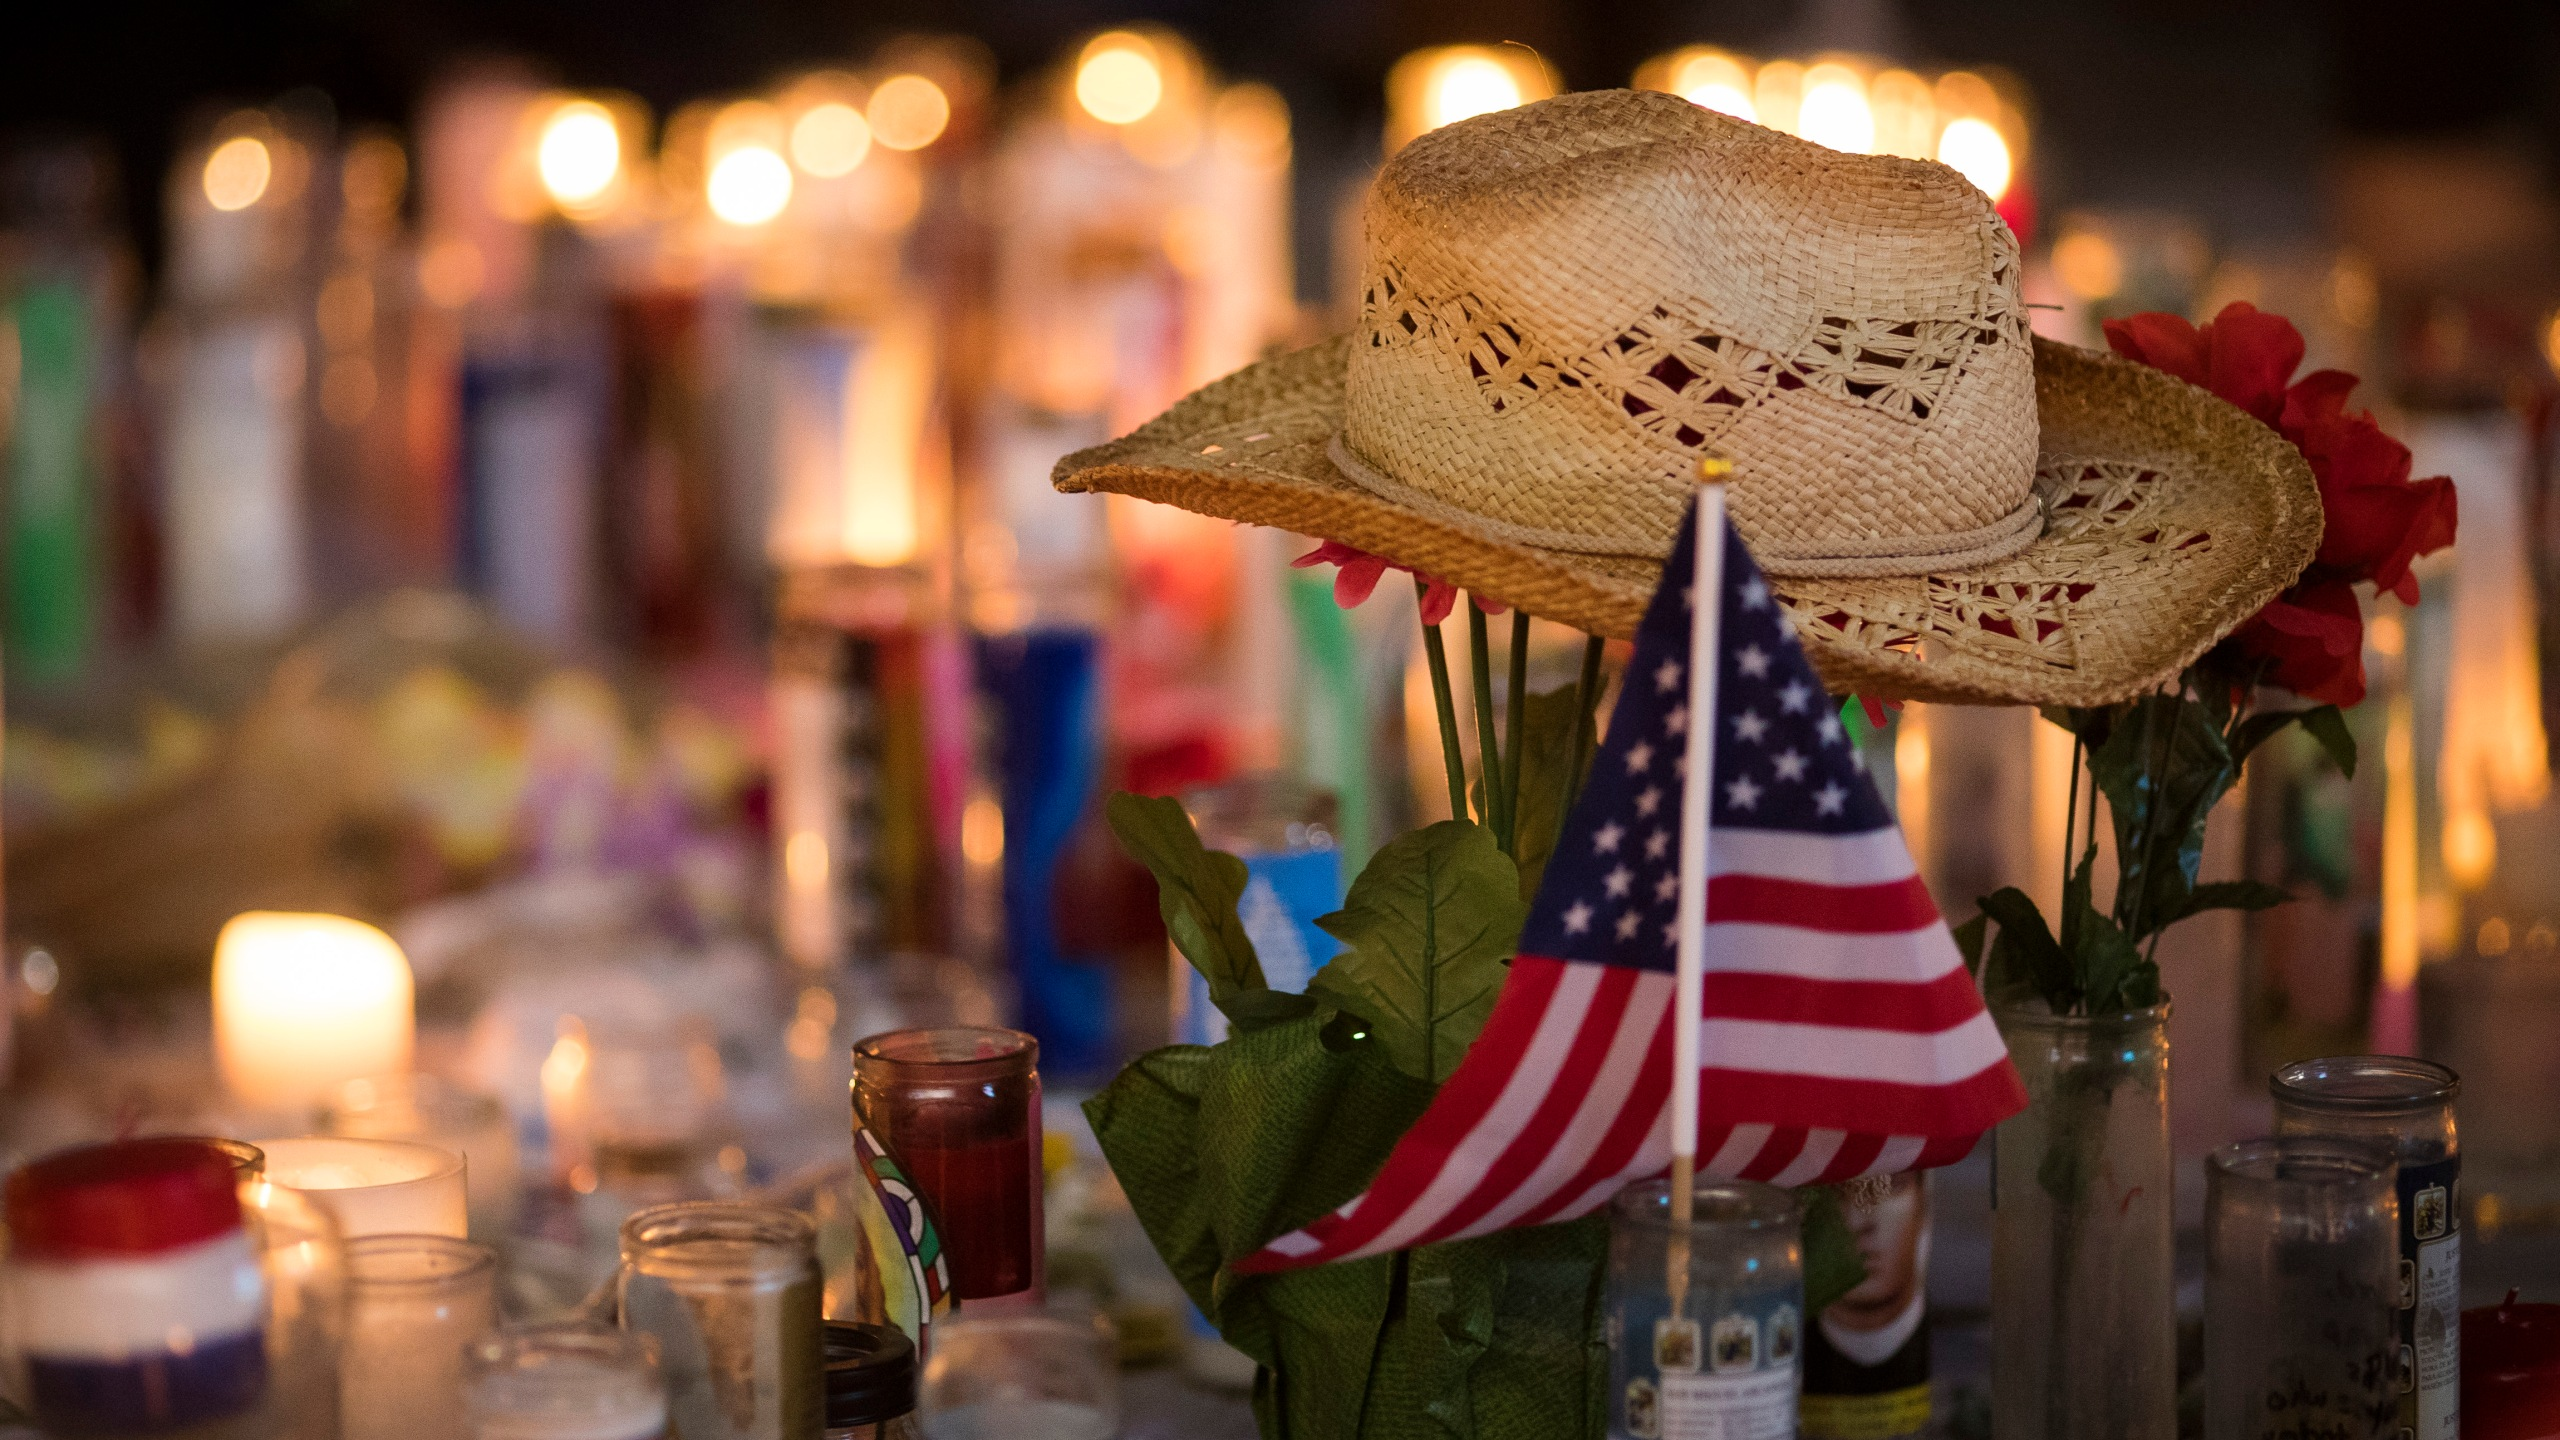 A hat is left at a makeshift memorial during a vigil to mark one week since the mass shooting at the Route 91 Harvest country music festival in Las Vegas, Nevada. (Credit: Drew Angerer/Getty Images)